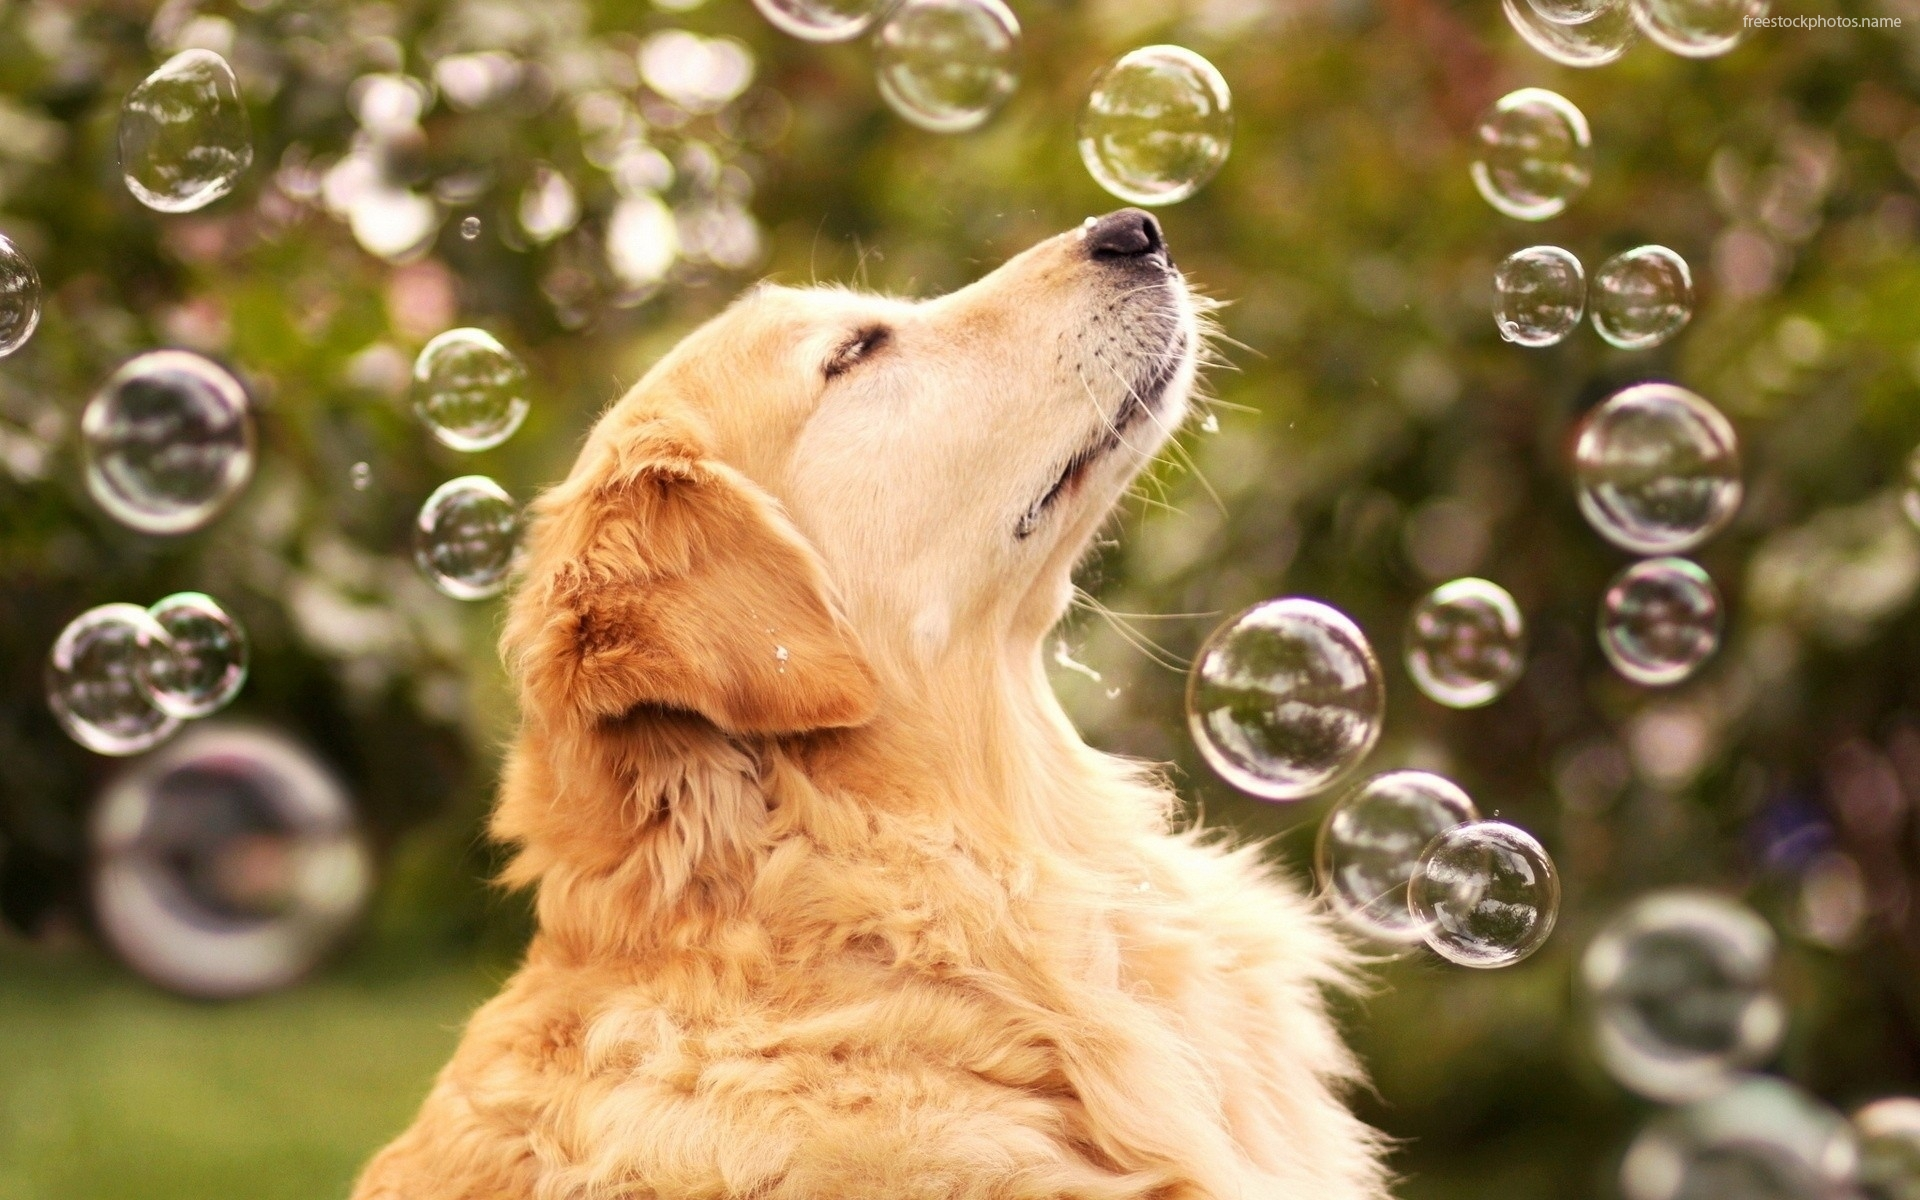 Images of a Dog Catching Soup Bubbles 192.99 Kb